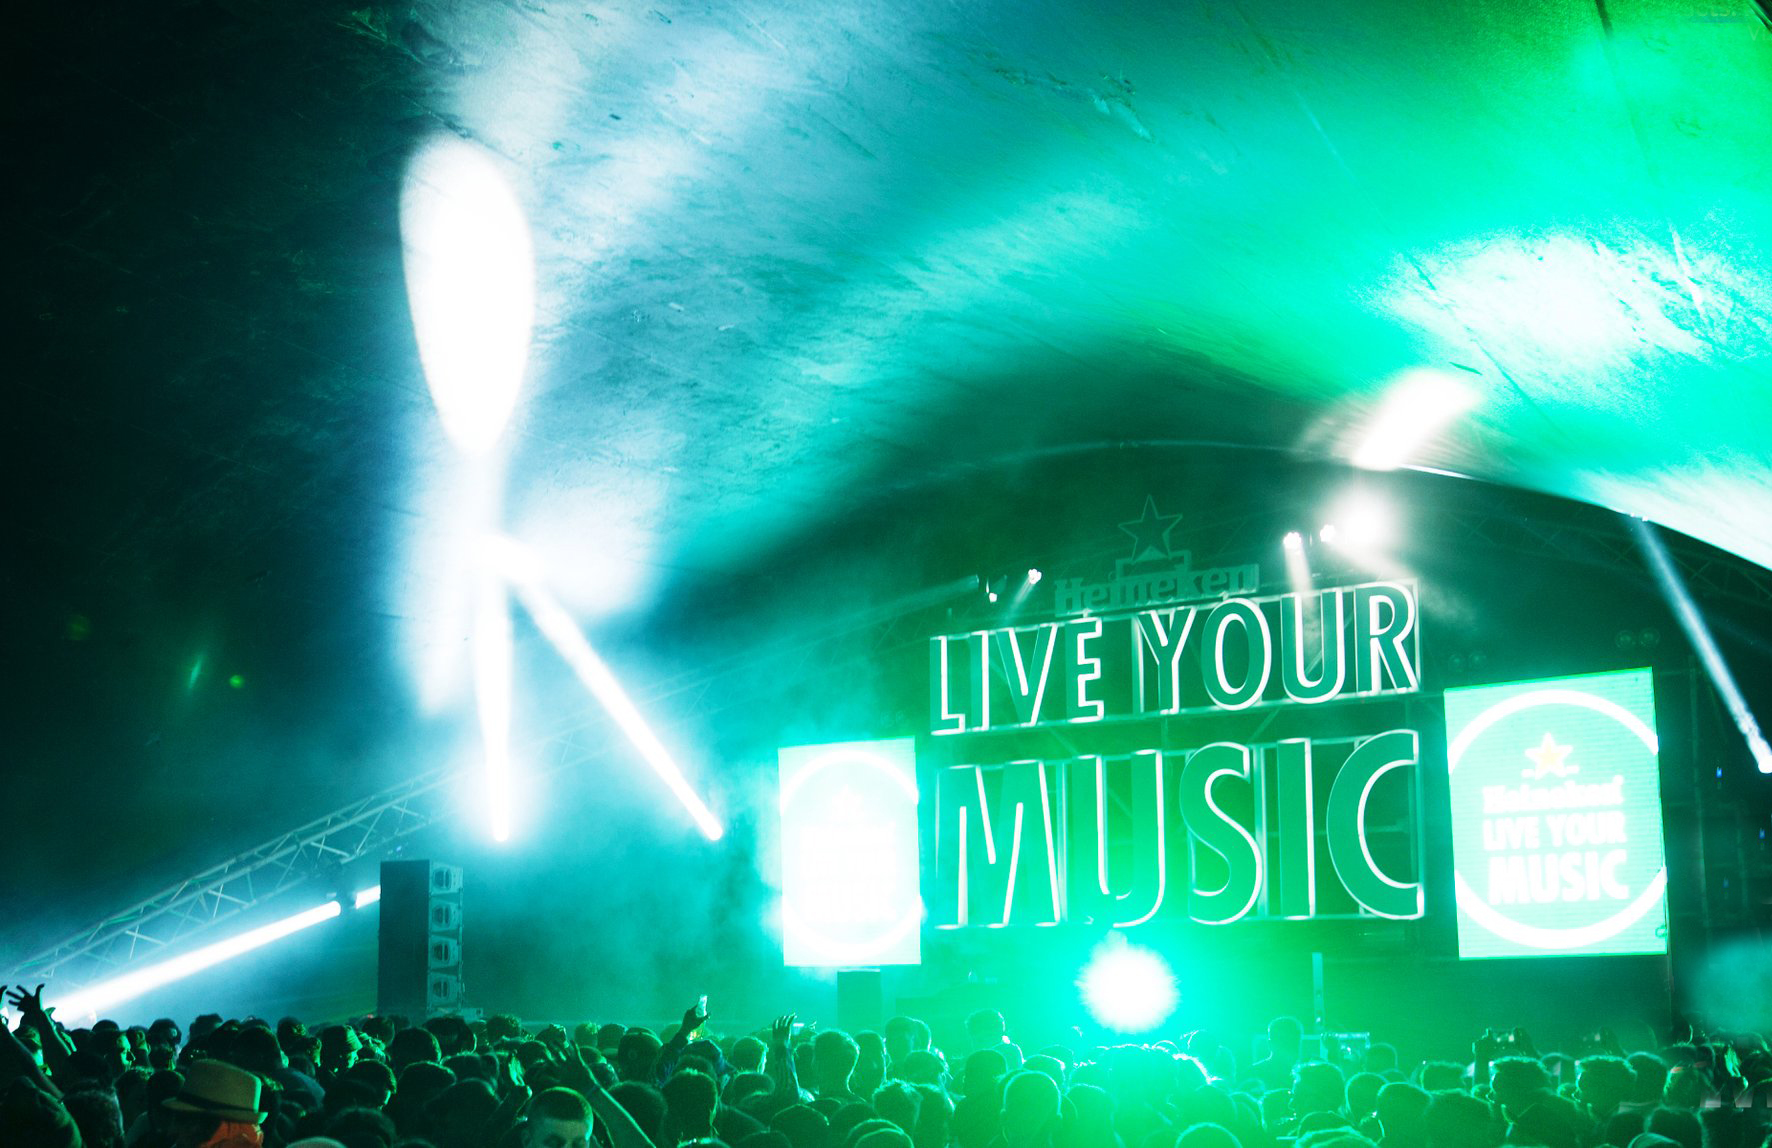 Heineken Live Your Music | exhibit